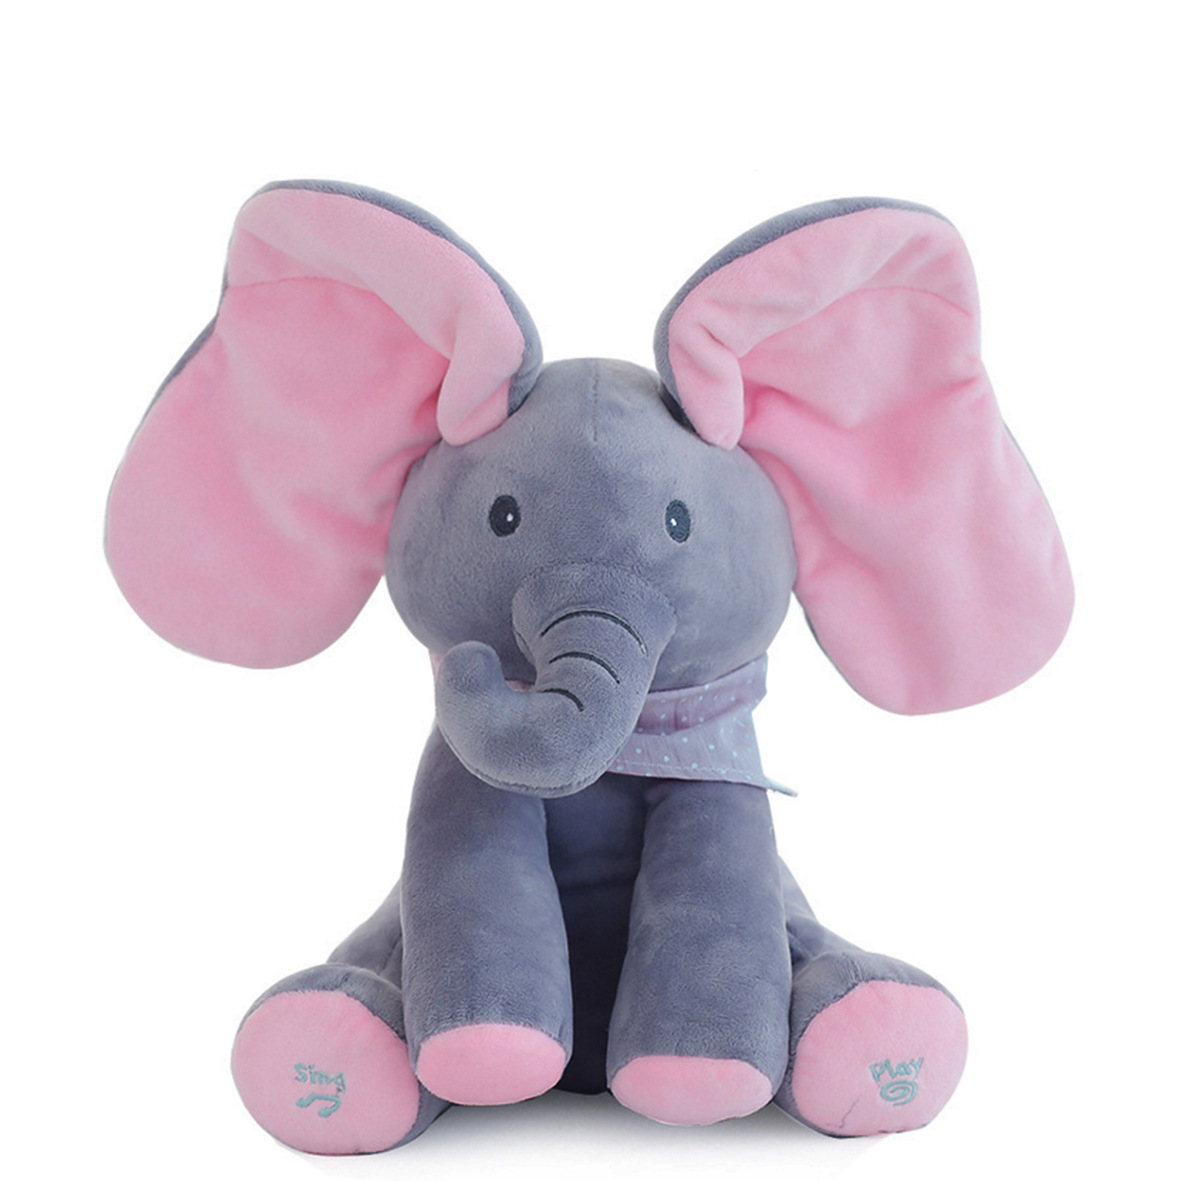 Baby Elephant Doll Peekaboo Plush Toys Cute Dog Electric Music Dang Yan Doll Birthday Gift